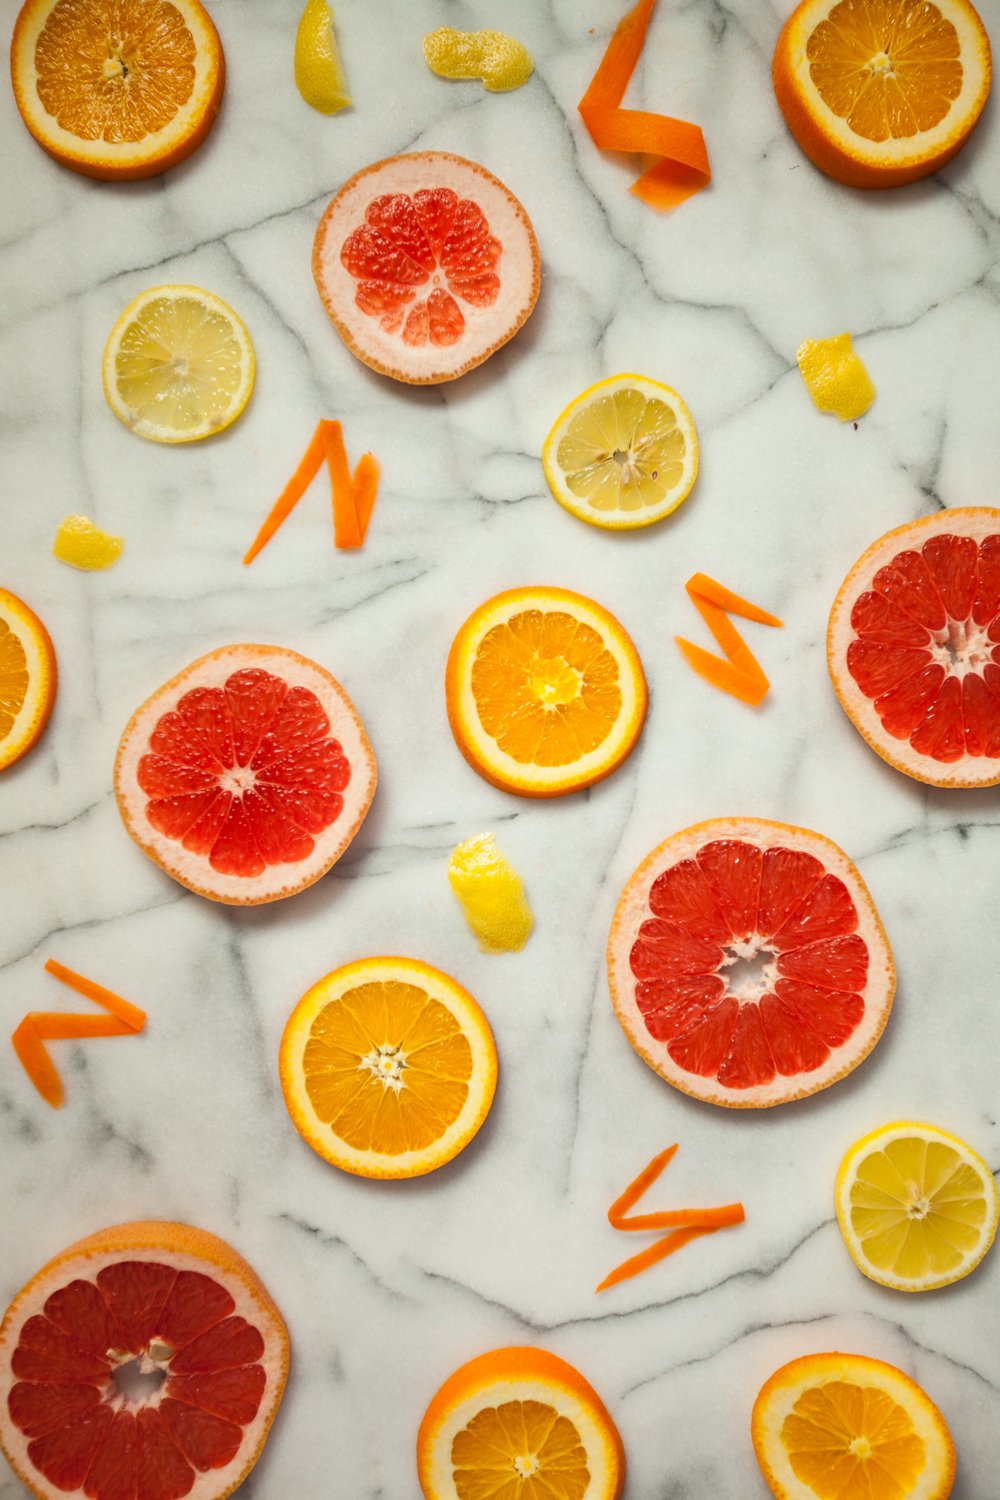 ginger-grapefruit-recipe-4.jpg